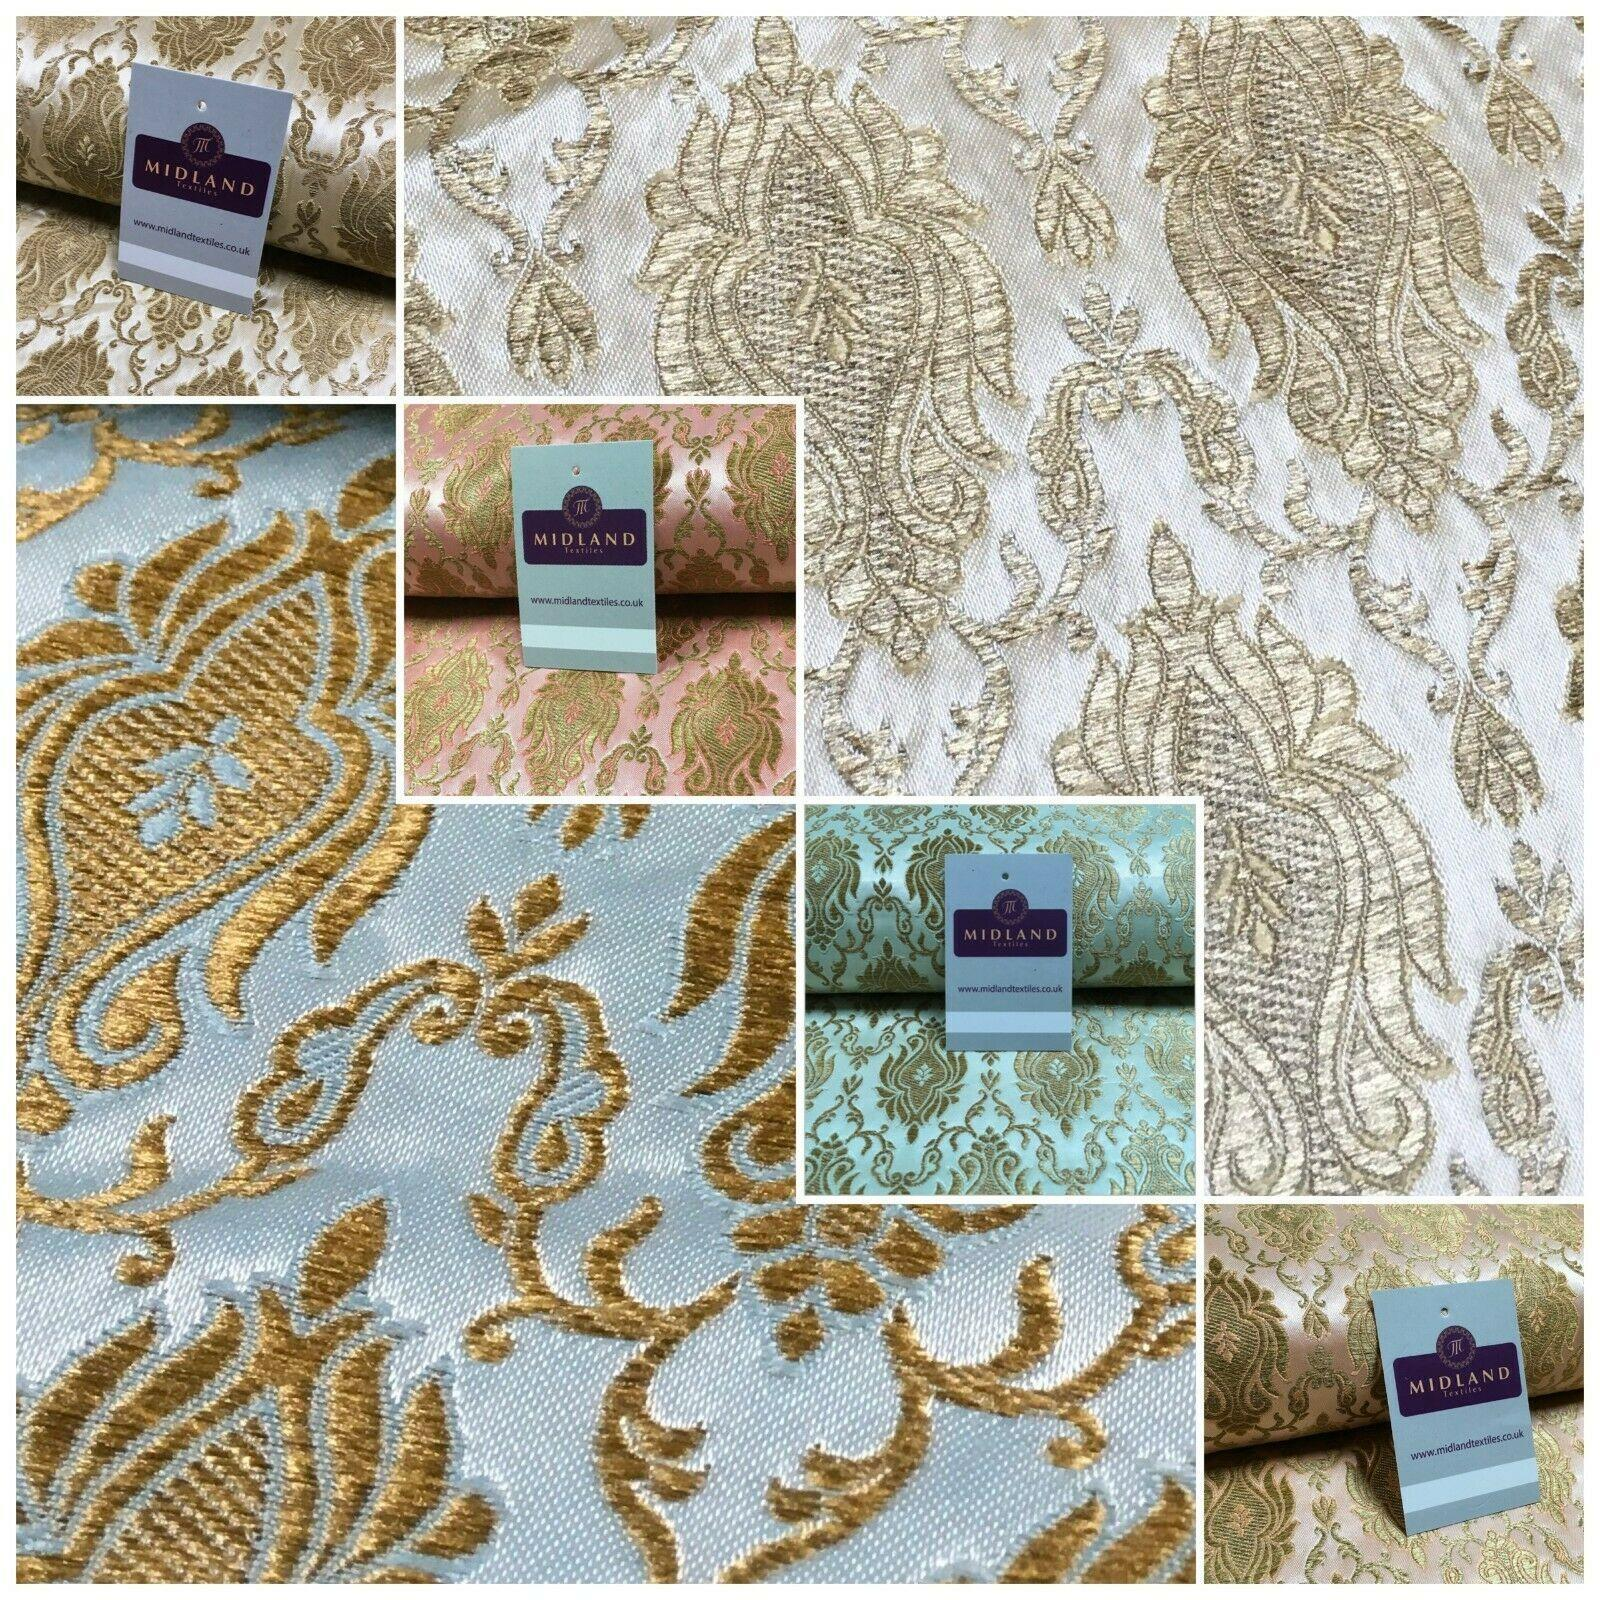 Gold Banarsi Ornamental Waistcoat Brocade Damask Jacquard Fabric 150 cm MR1295